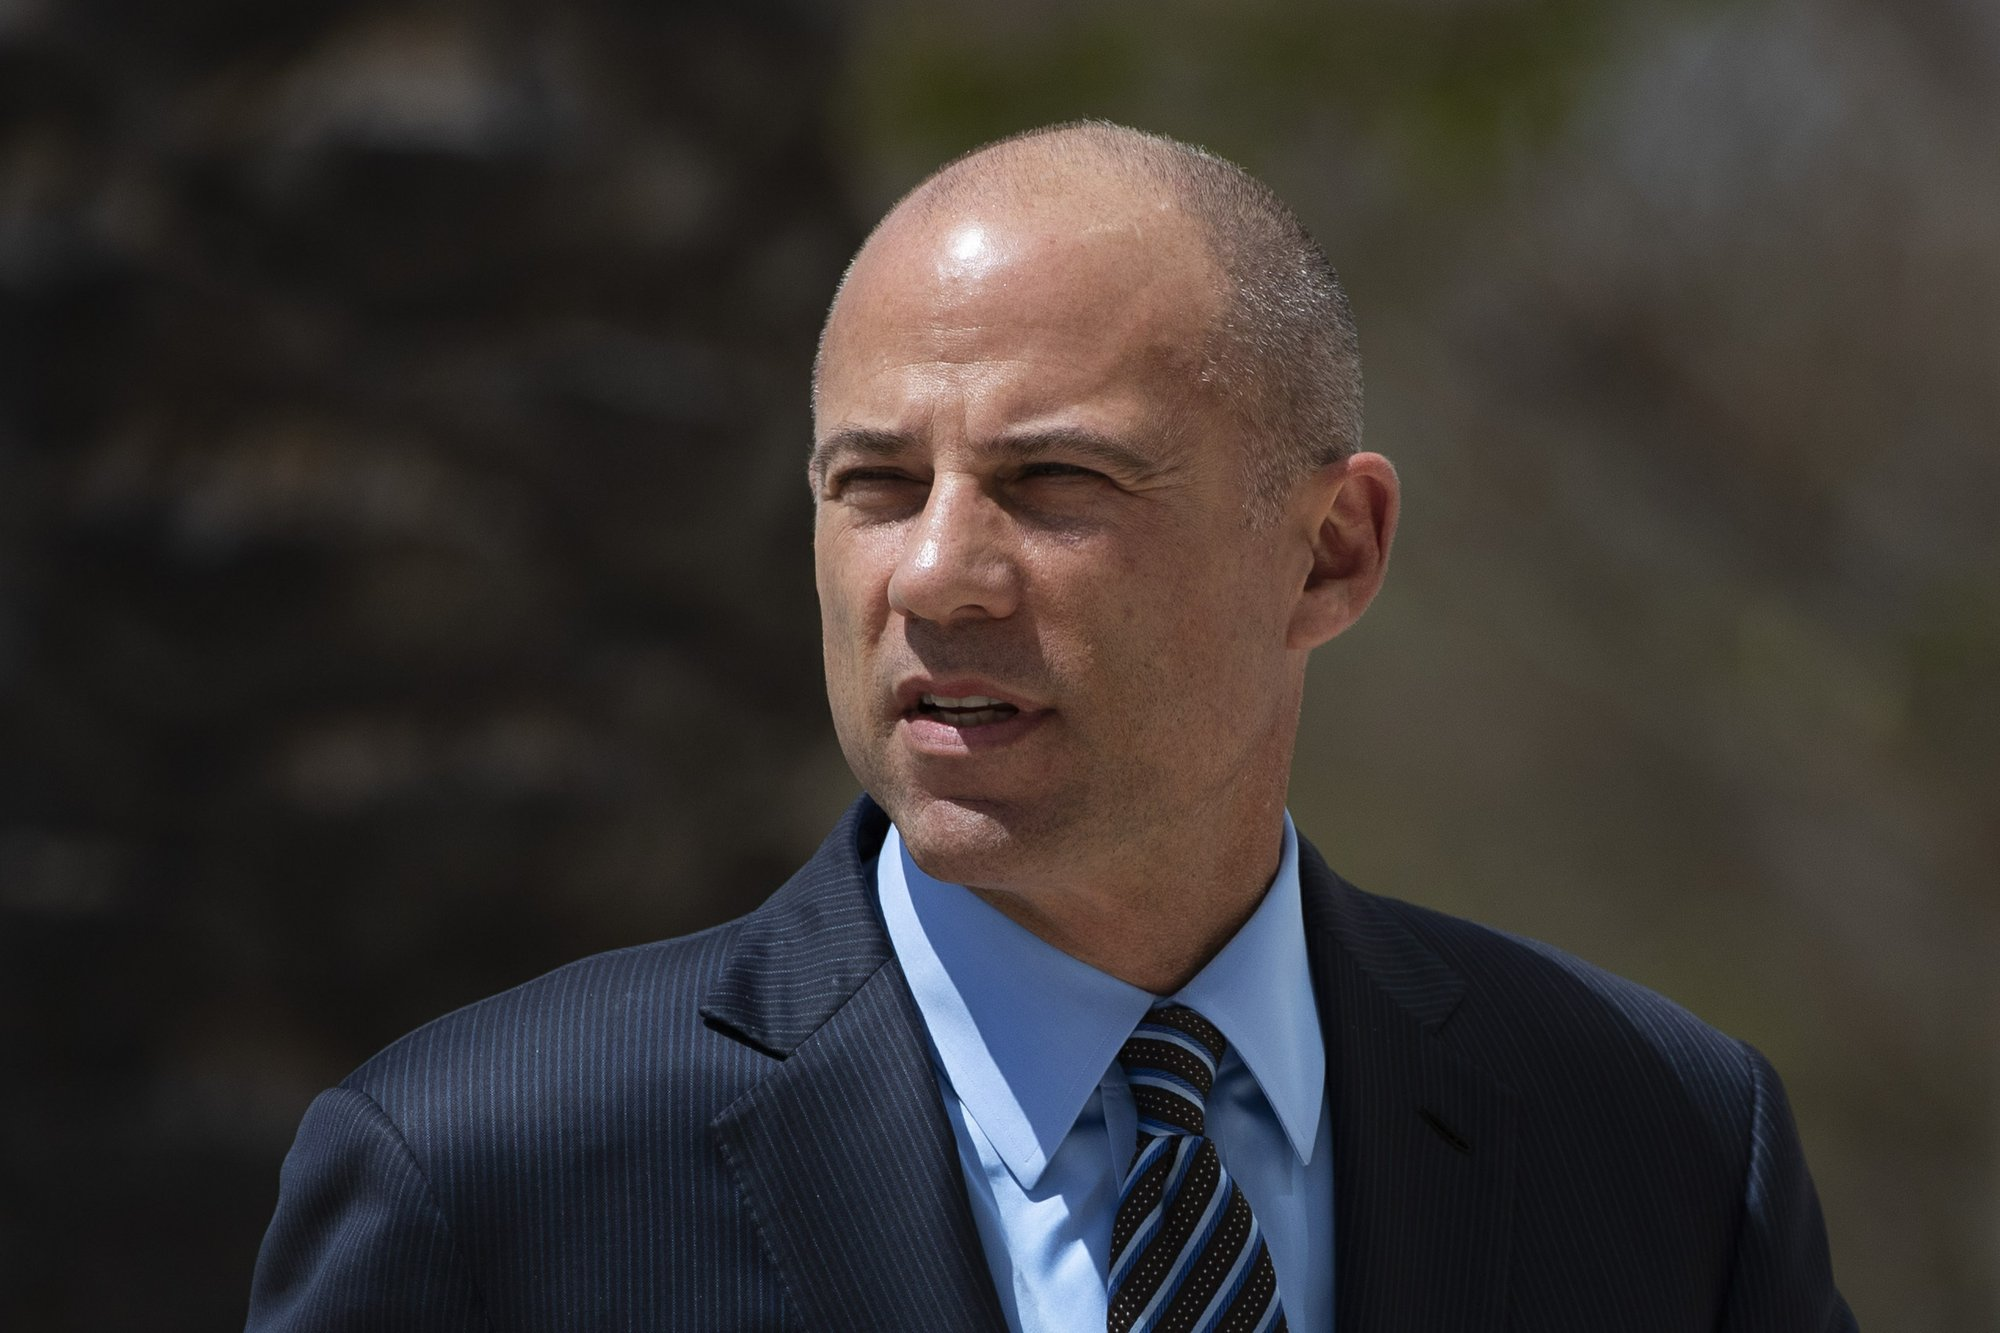 Michael Avenatti Arrives at Court